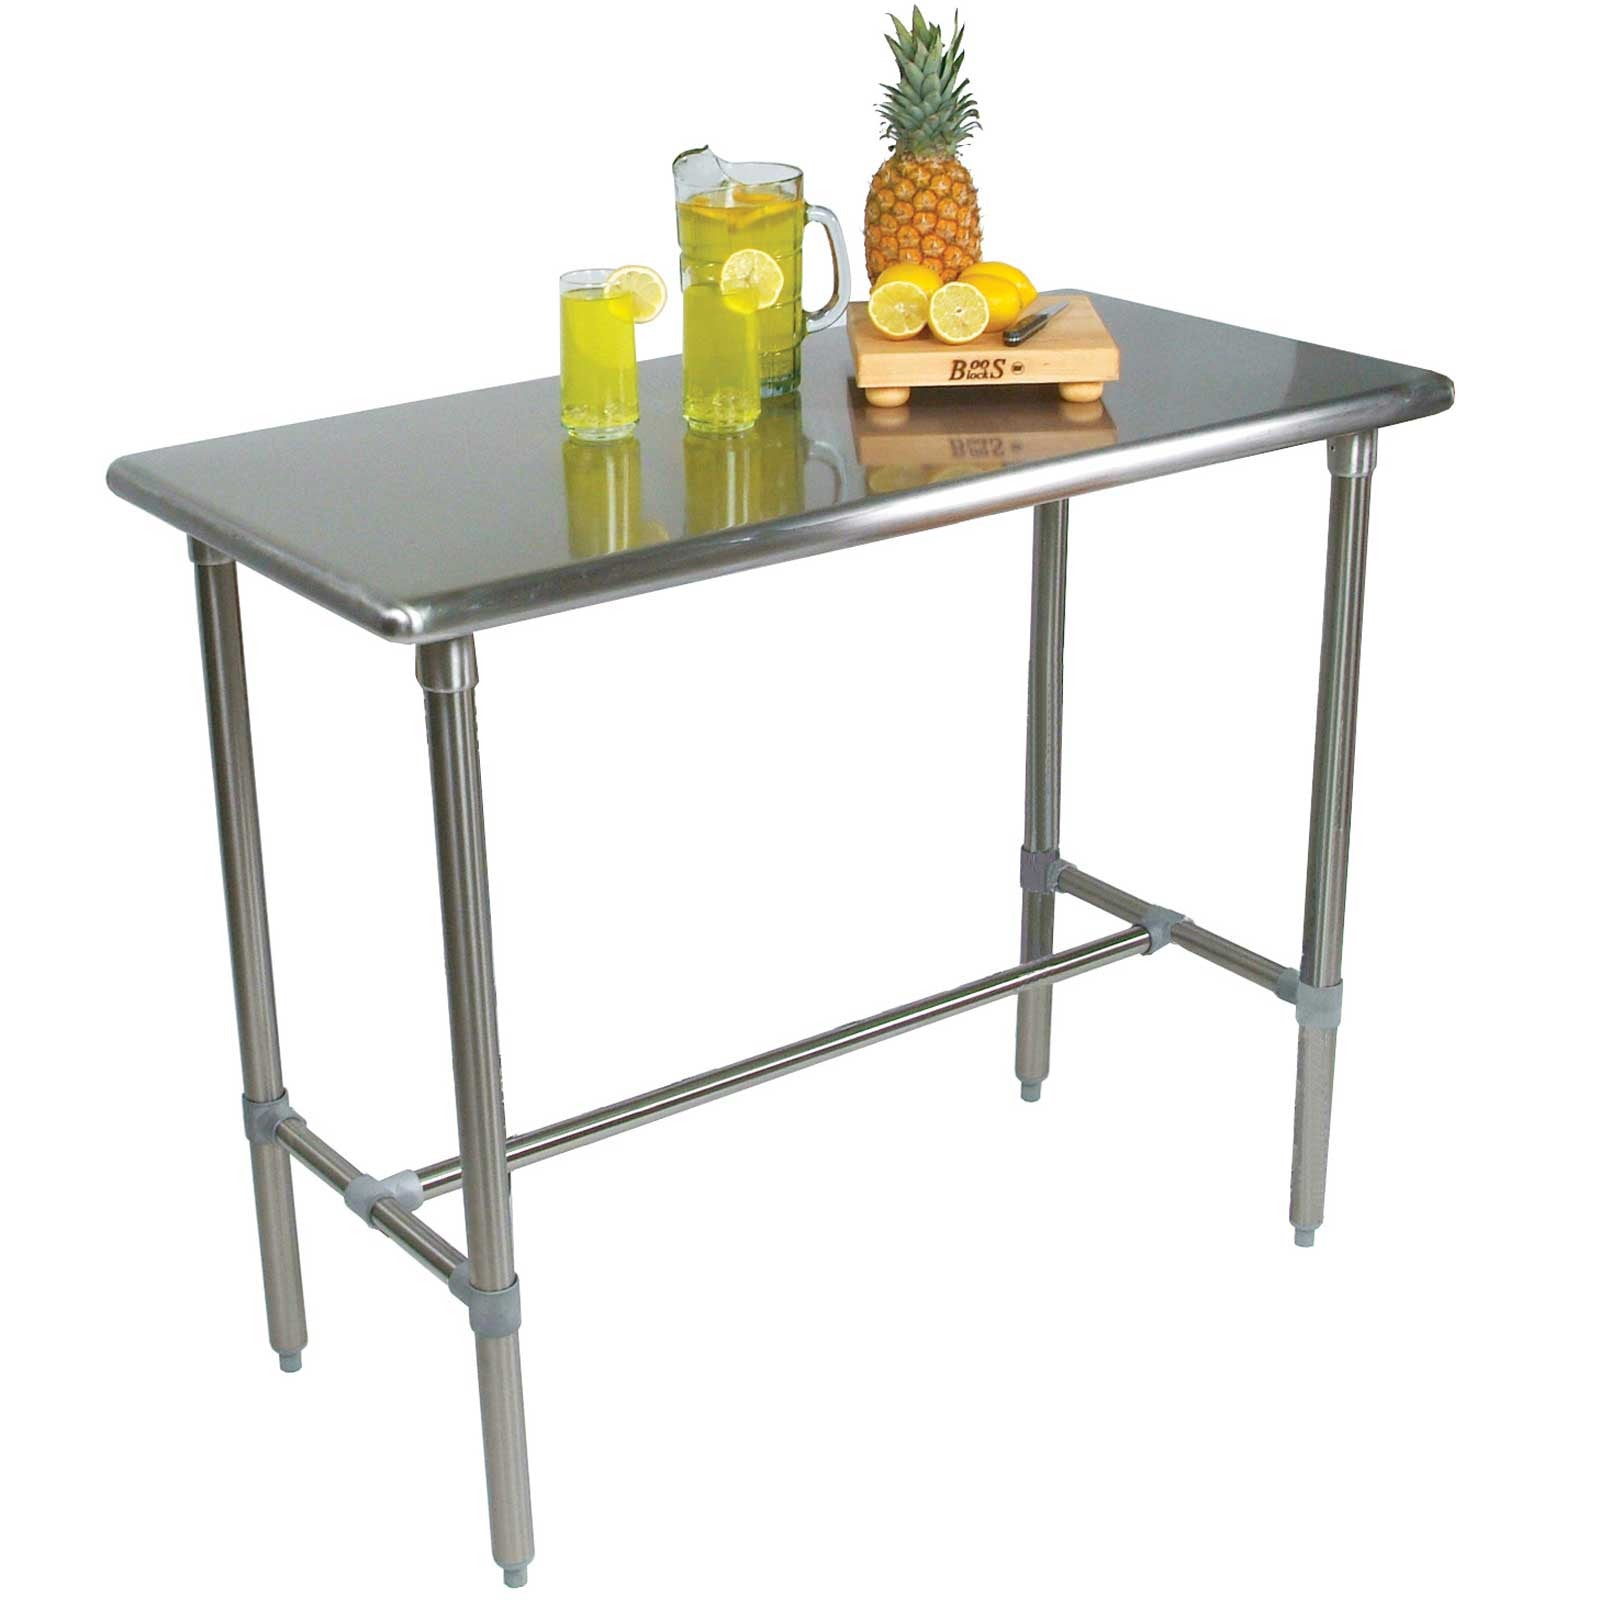 John Boos BBSS Stainless Steel Cucina Classico